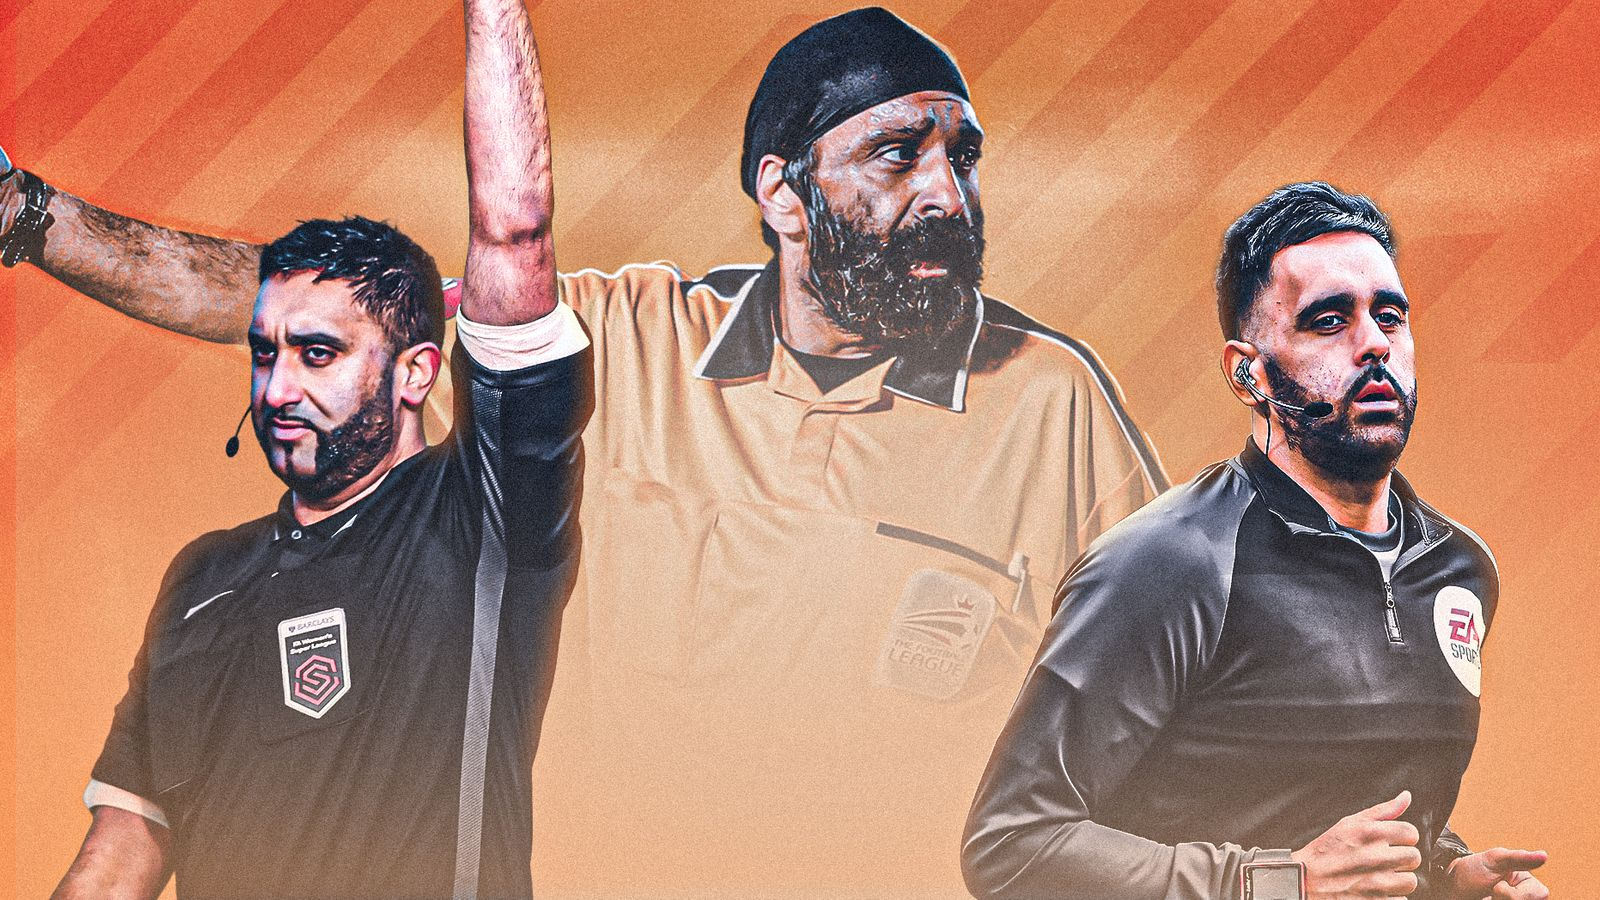 sikh-referees-to-execute-championship-historical-previous.jpg